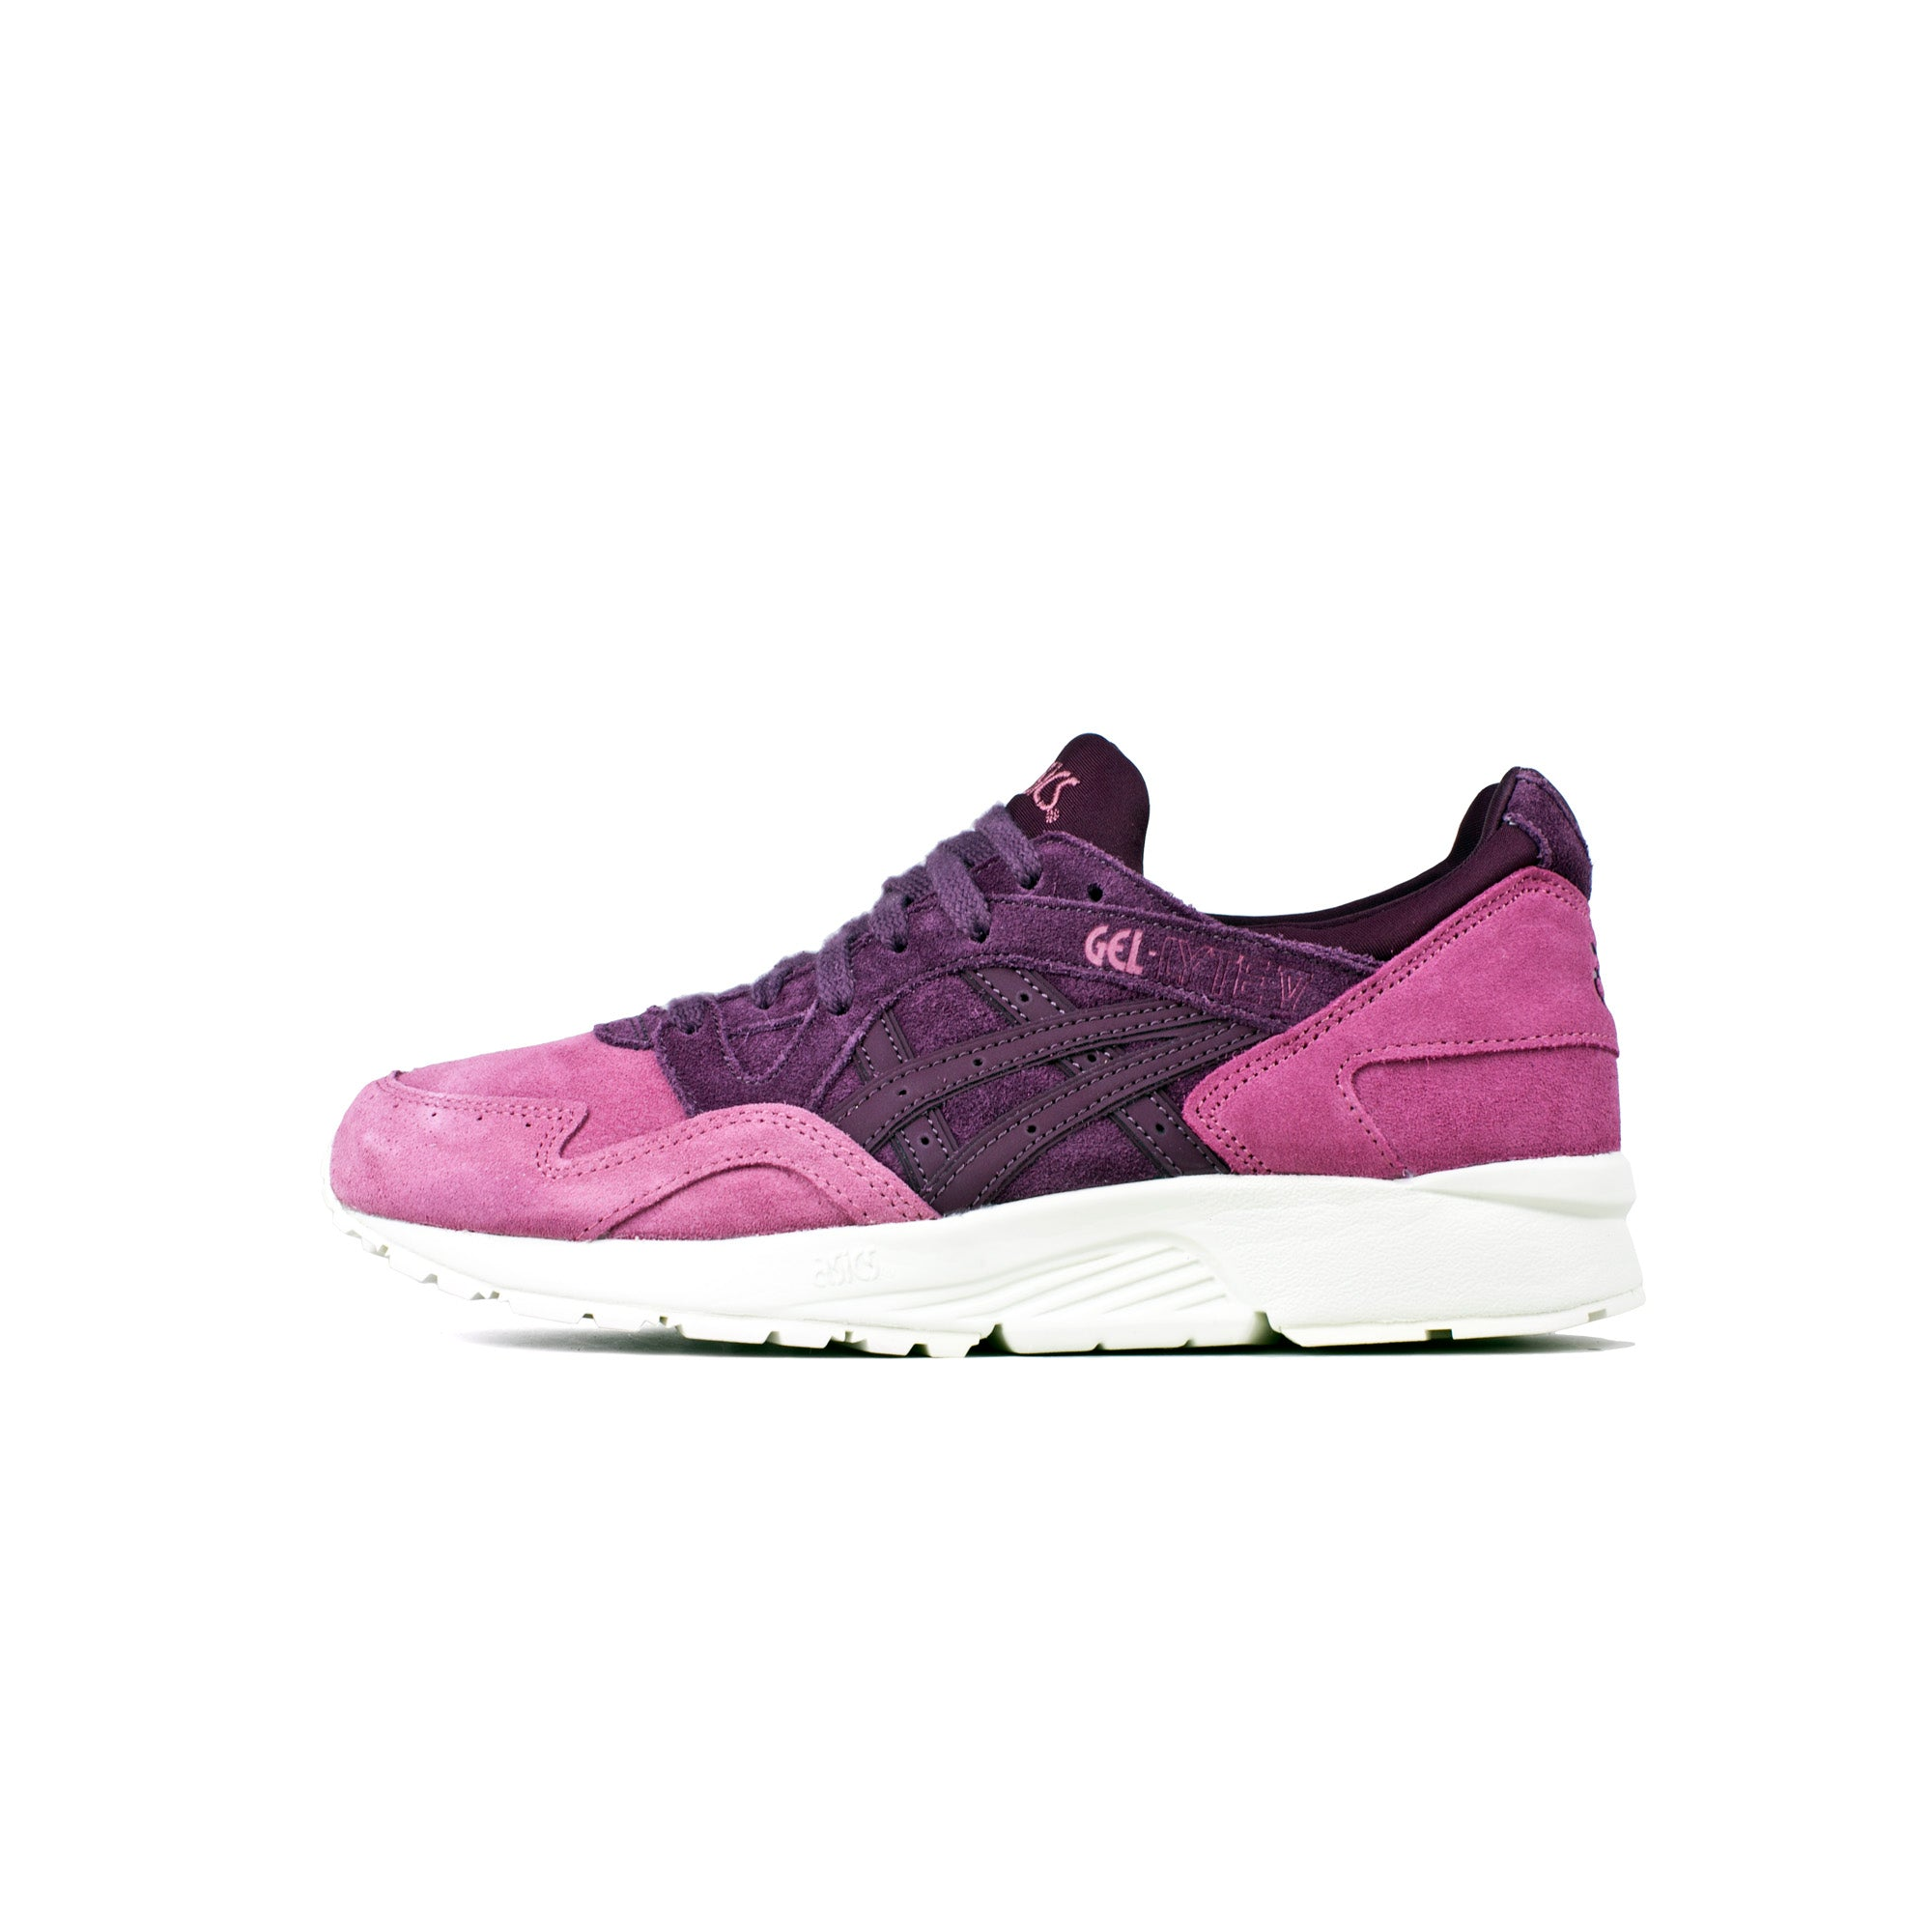 check out 2f96b 91a44 Asics Women's Gel-Lyte V